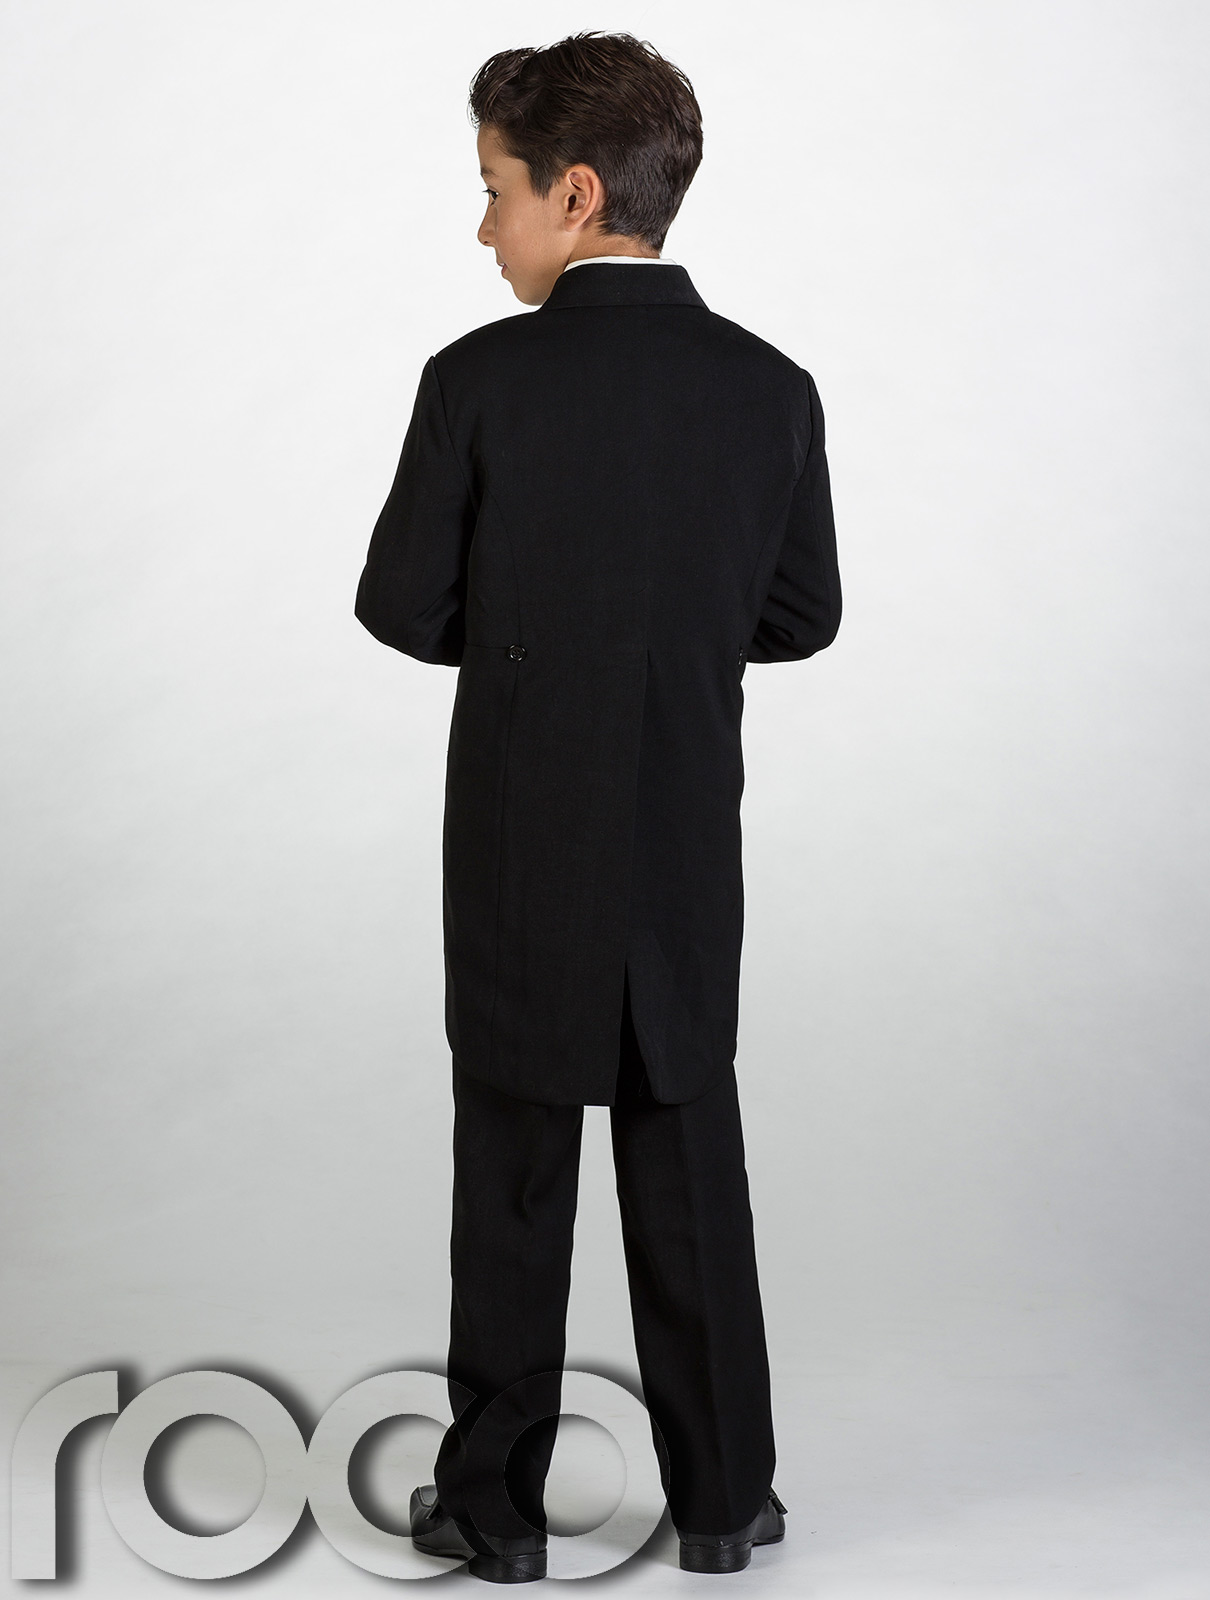 Boys' Suits: Free Shipping on orders over $45 at ganjamoney.tk - Your Online Boys' Clothing Store! Overstock uses cookies to ensure you get the best experience on our site. If you continue on our site, you consent to the use of such cookies. Little Boys Black 5 Piece Classic Vest Jacket Pants Special Occasion Suit. 5 Reviews. SALE.